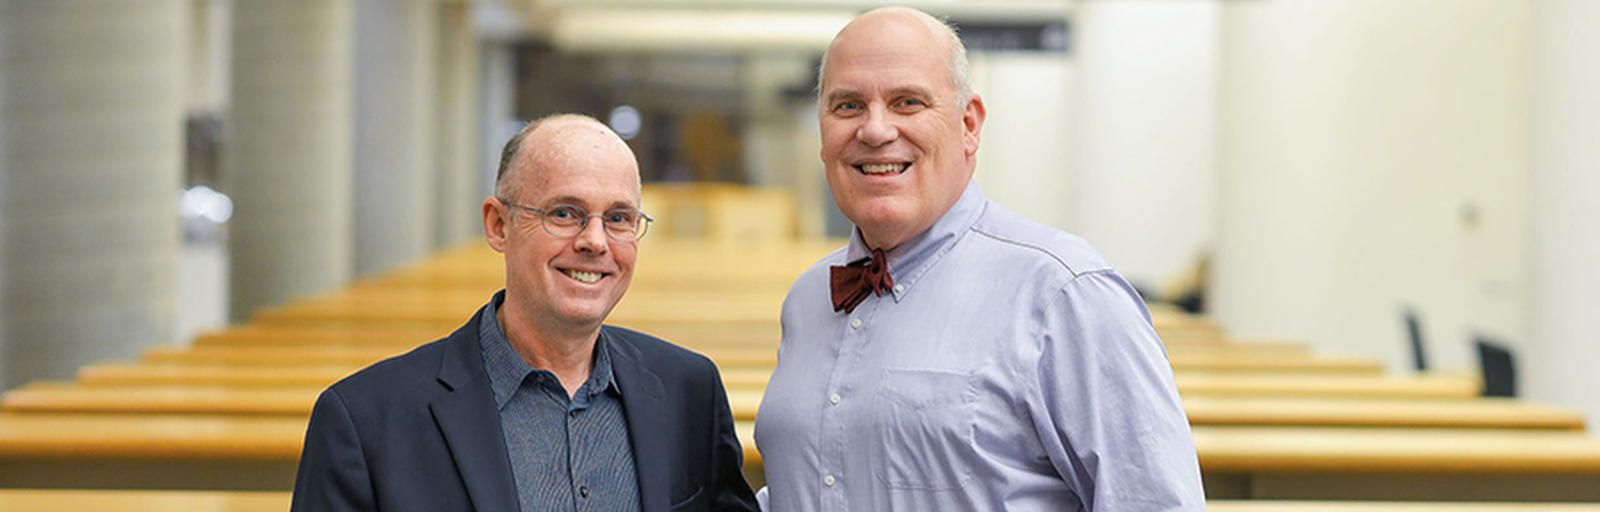 Brett McDonnell and Paul Vaaler